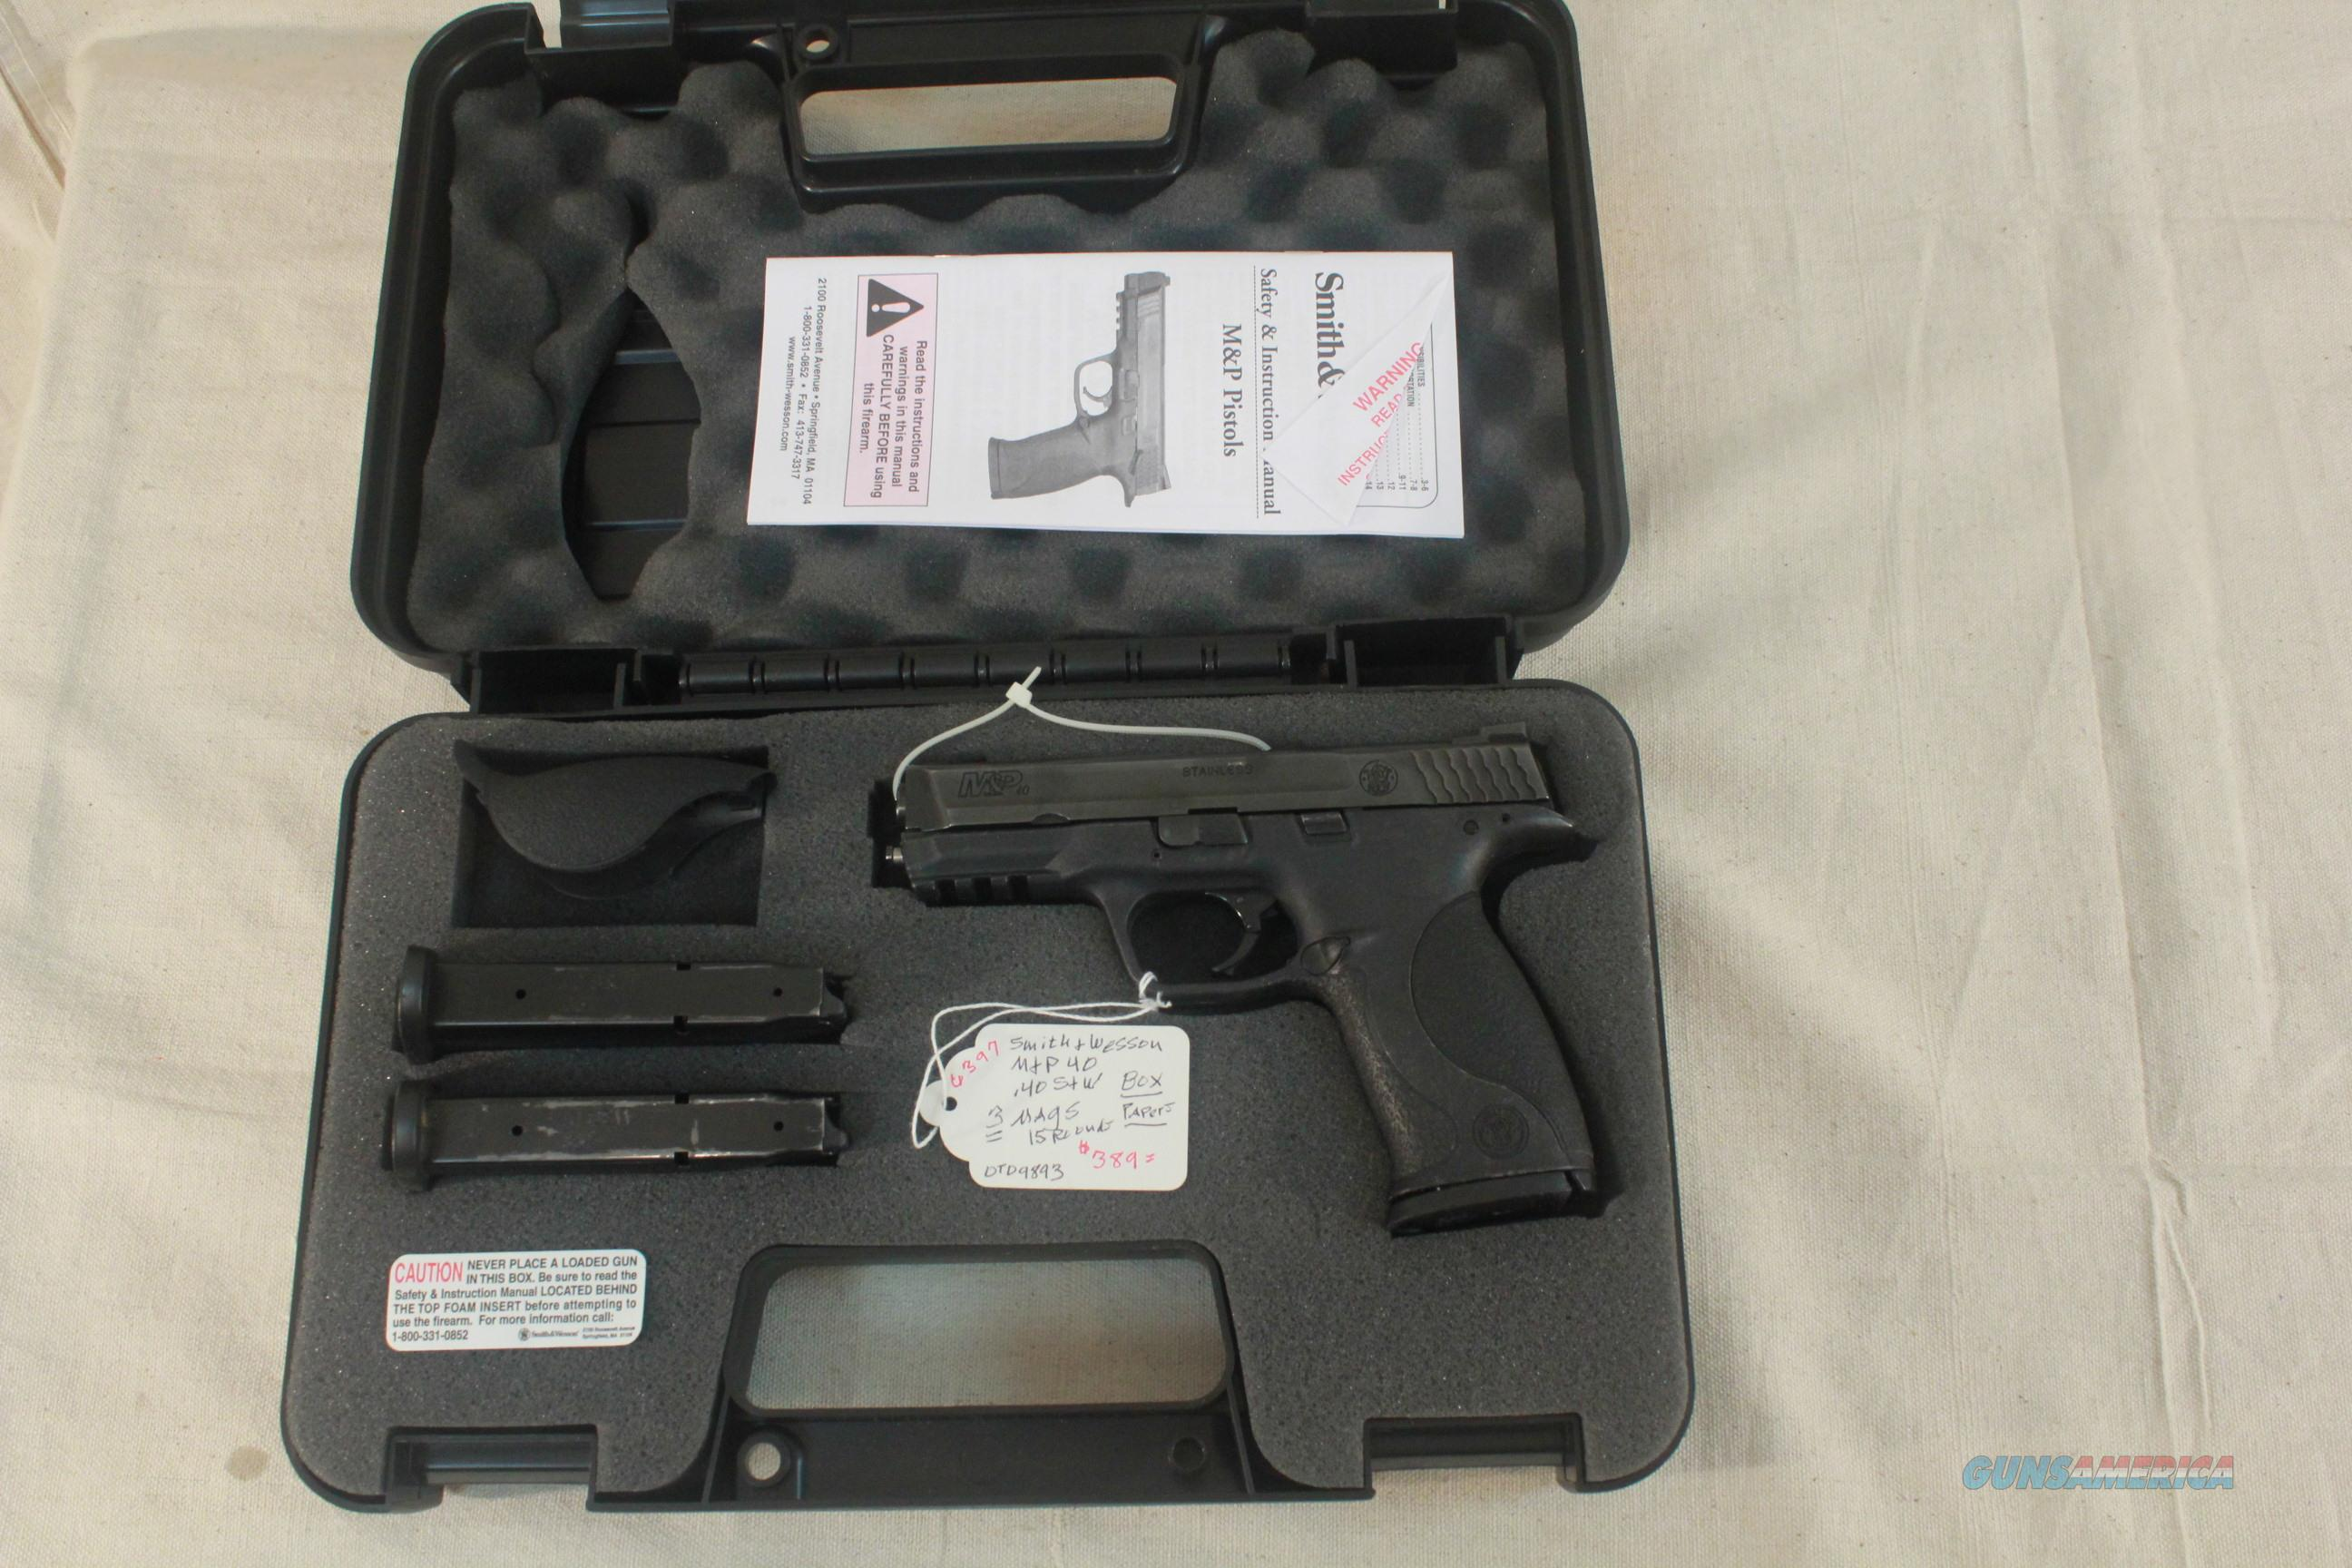 Smith & Wesson Model M&P40 in .40S&W, 3 clips, box - used  Guns > Pistols > Smith & Wesson Pistols - Autos > Steel Frame